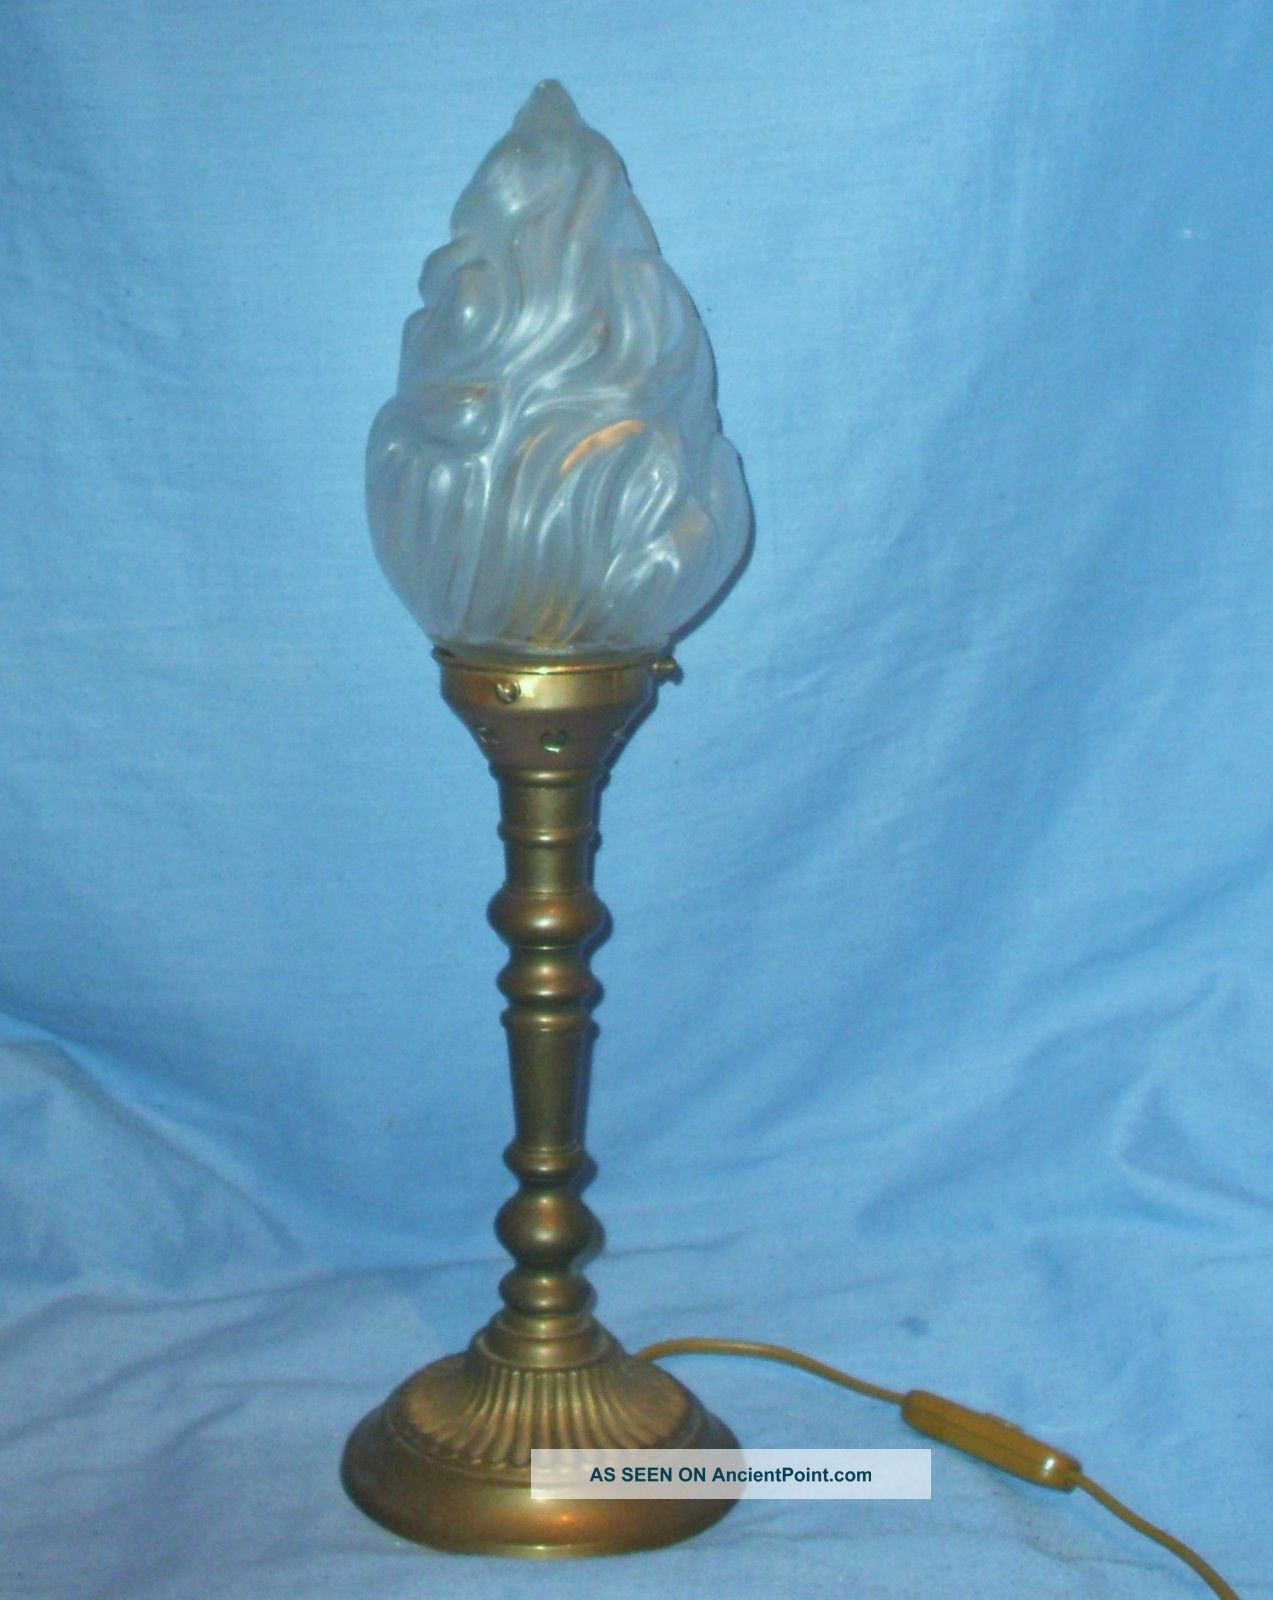 Vintage Solid Brass Lamp With Flame Shade 20th Century photo